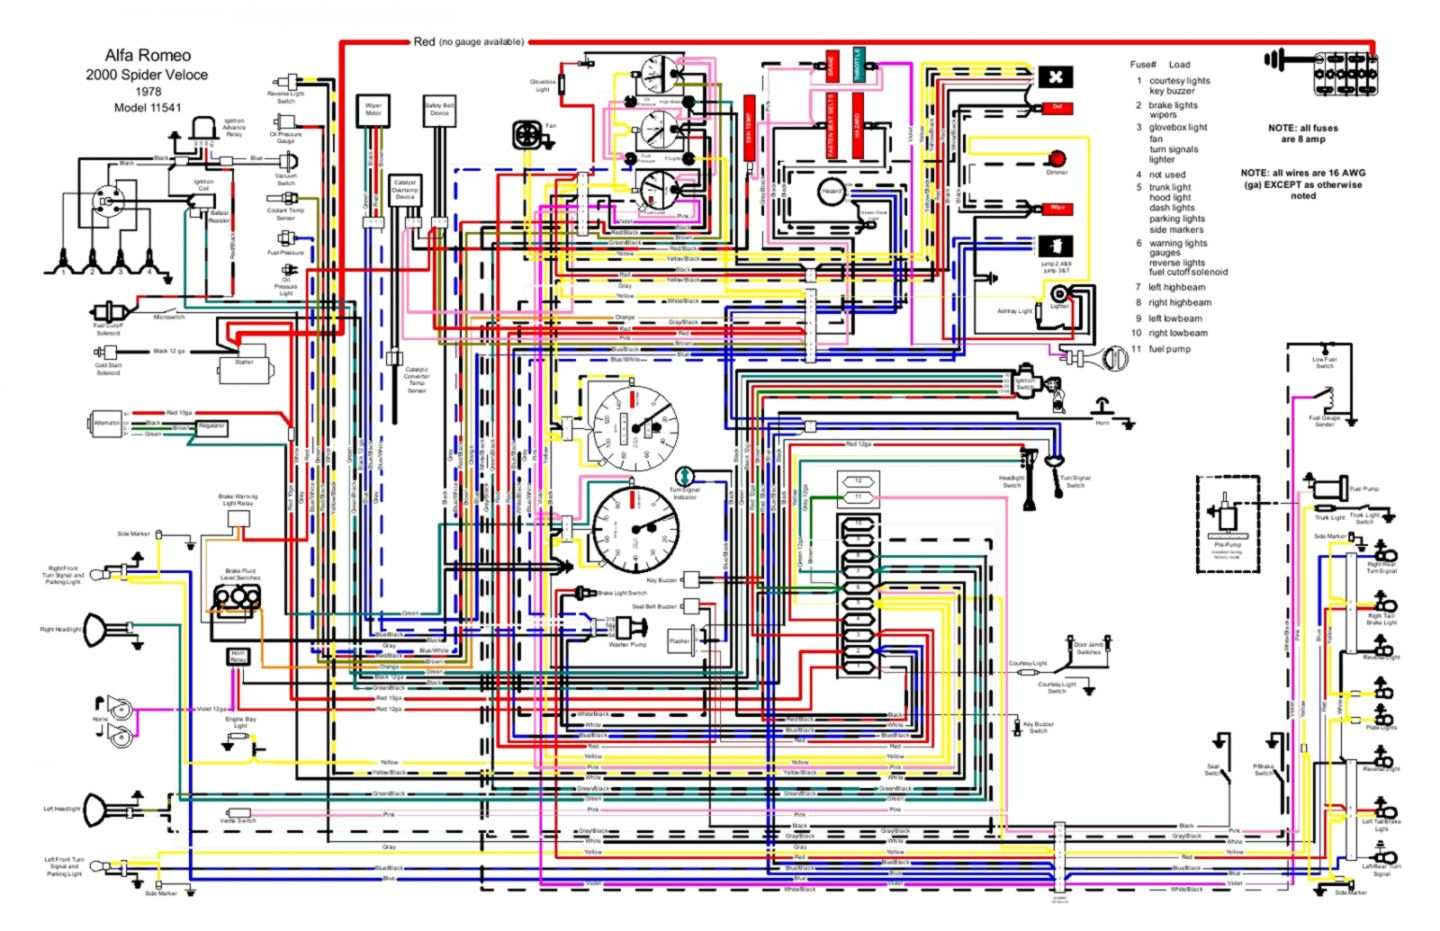 hight resolution of basic automotive wiring diagram wiring diagram paper vehicle wiring diagram symbols basic auto electrical diagram wiring